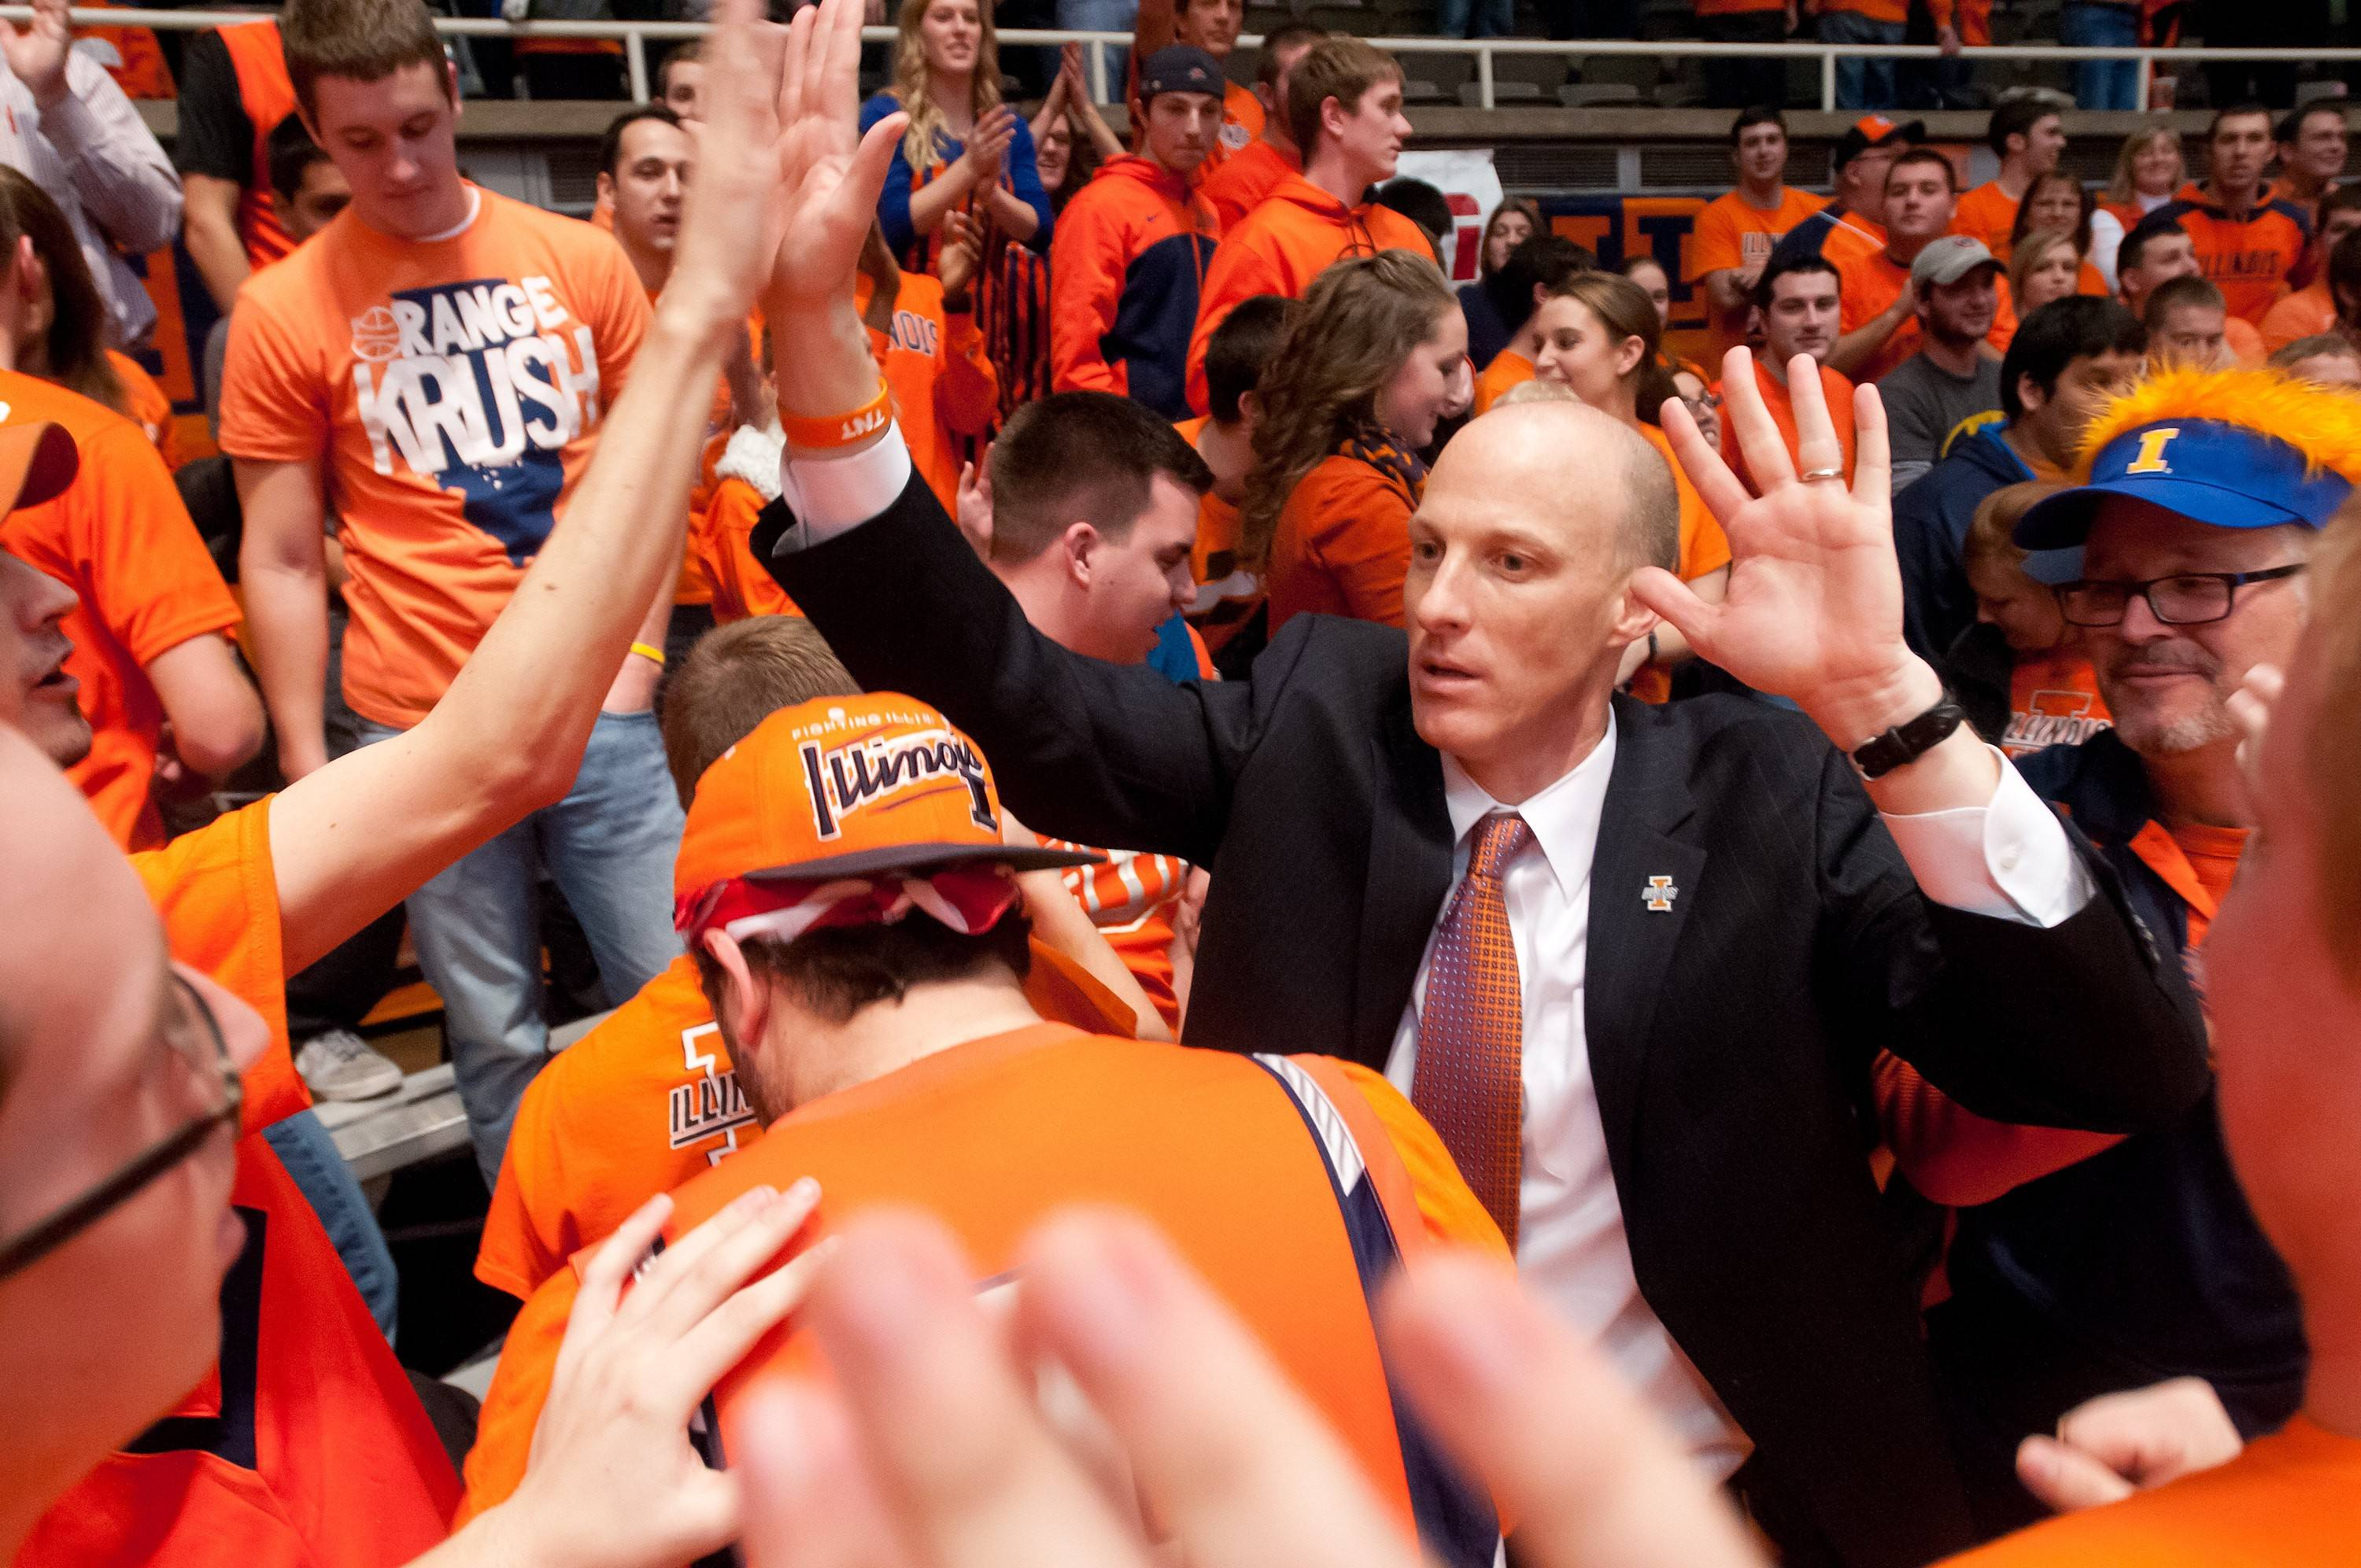 While Illinois and head coach John Groce, right, beat Indiana last December in Champaign, the Hoosiers led the Big Ten in attendance and finished sixth in attendance nationally. Illinois finished 15th in attendance nationally.